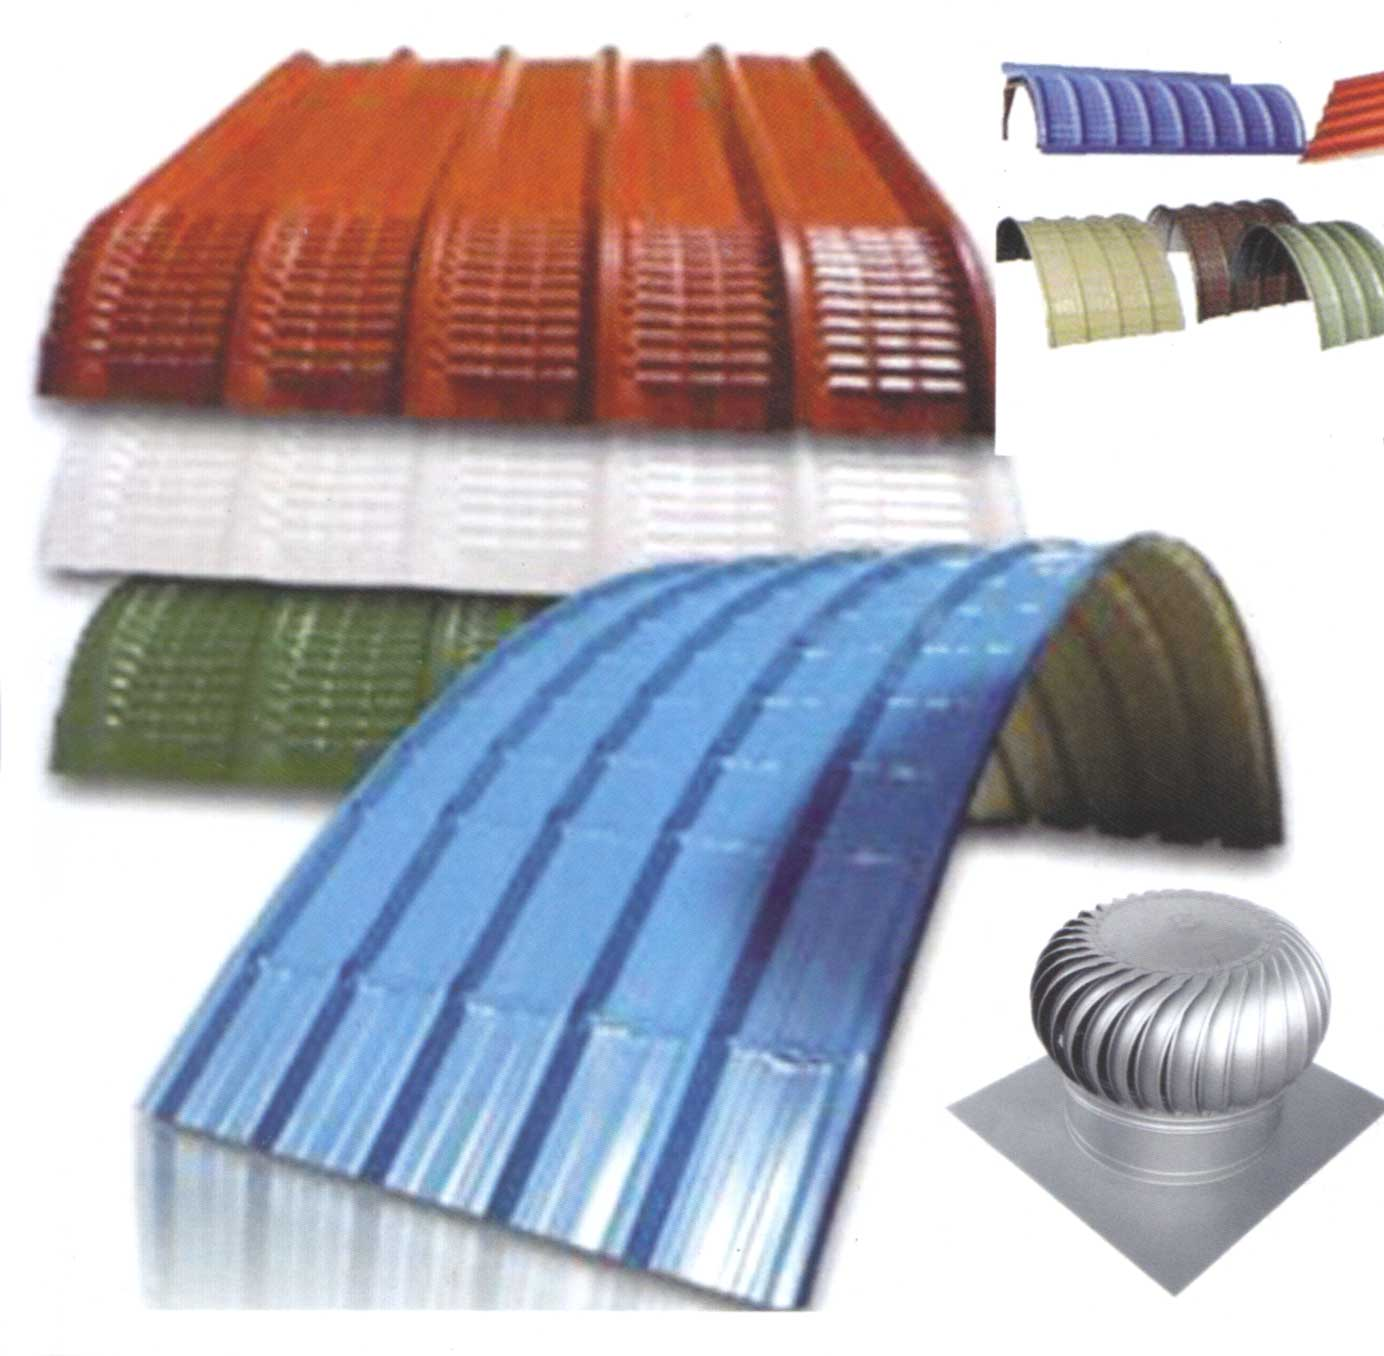 Corrugated Roofing Sheet Supplier Malaysia - Rug Designs